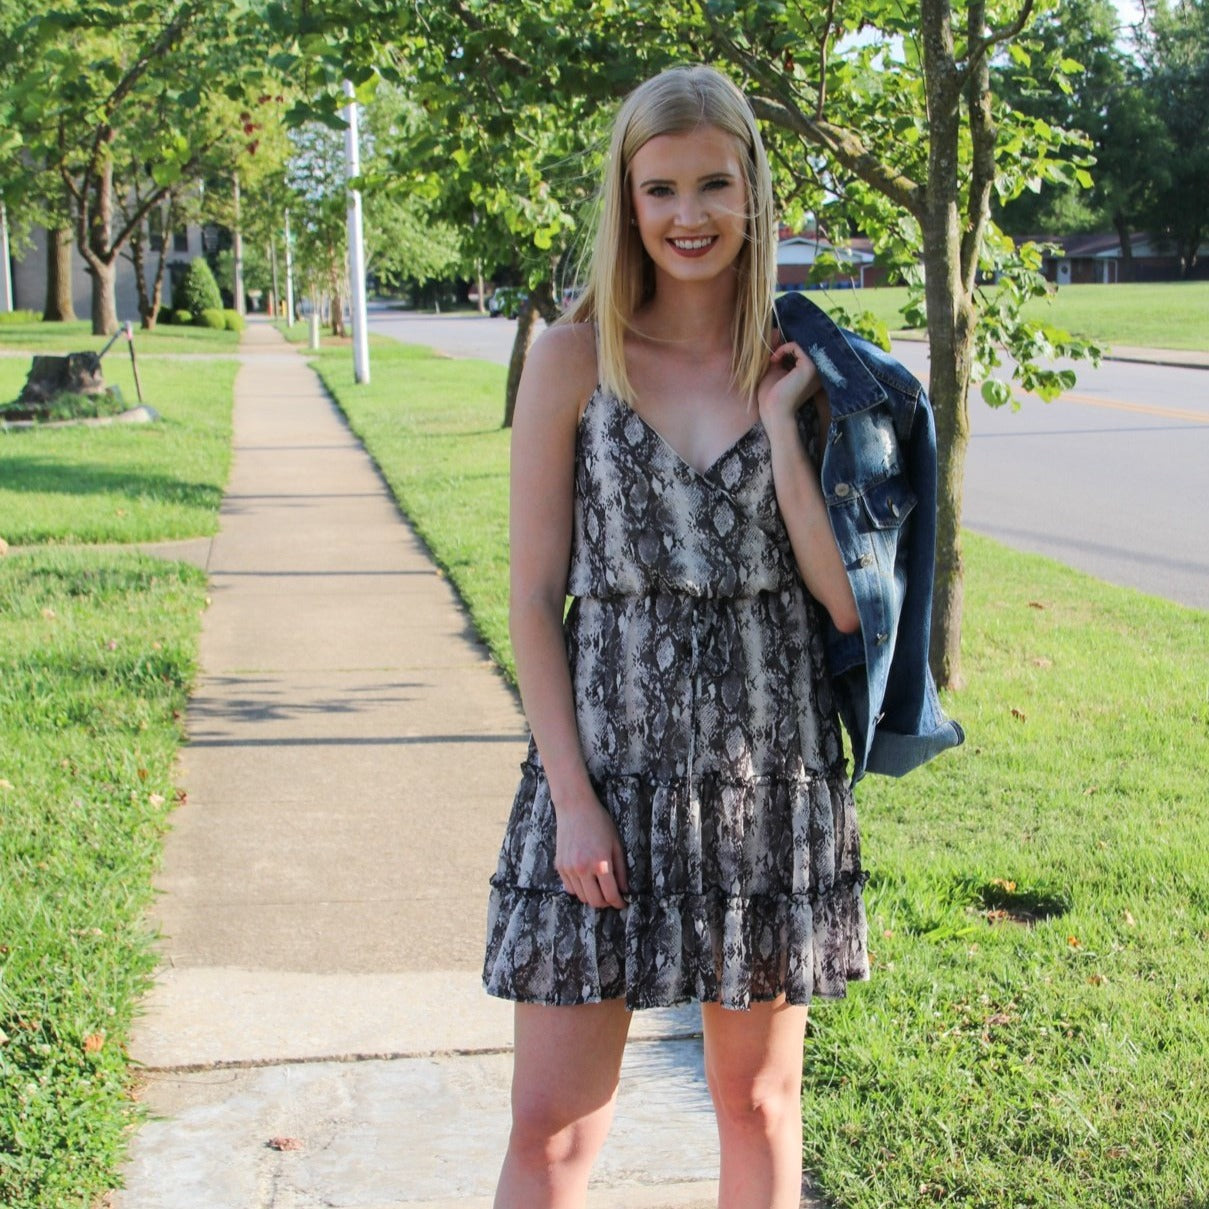 Snakeskin Dress - Shopbluemoonbentonville